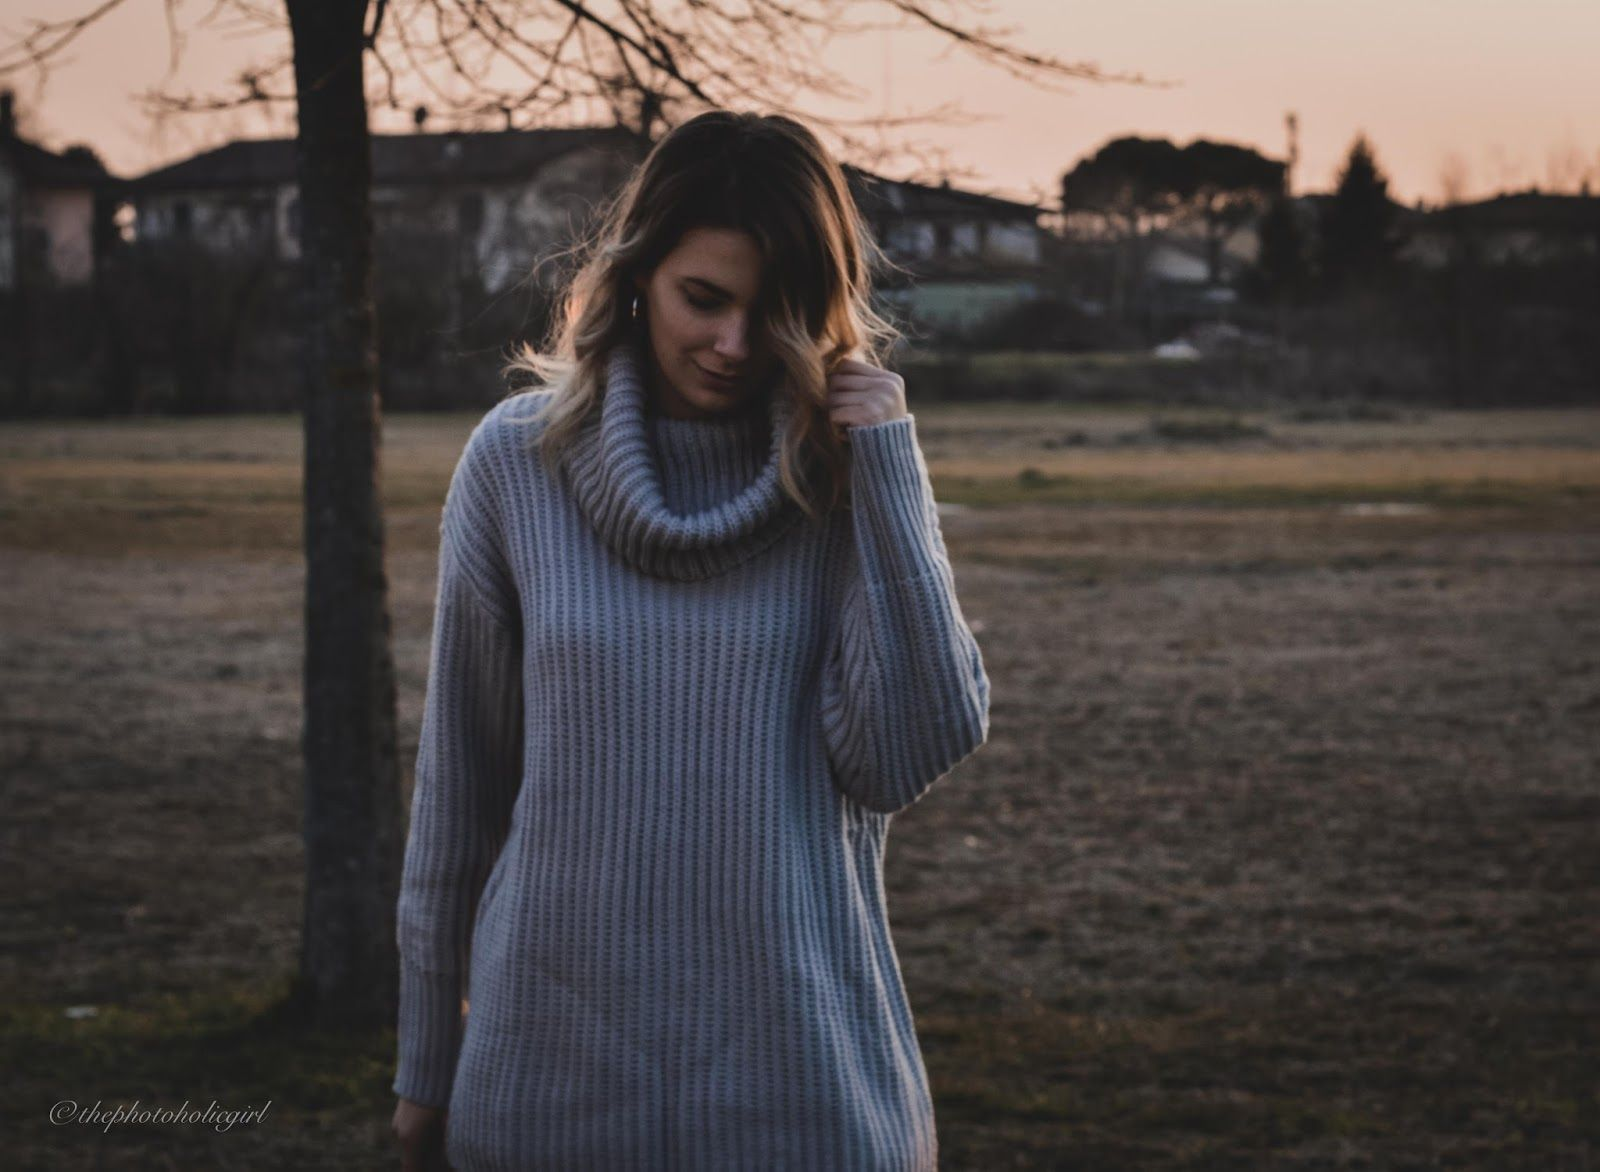 The Photoholic Girl - Personal #Blog: Outfit: come indossare un #maglione #oversize